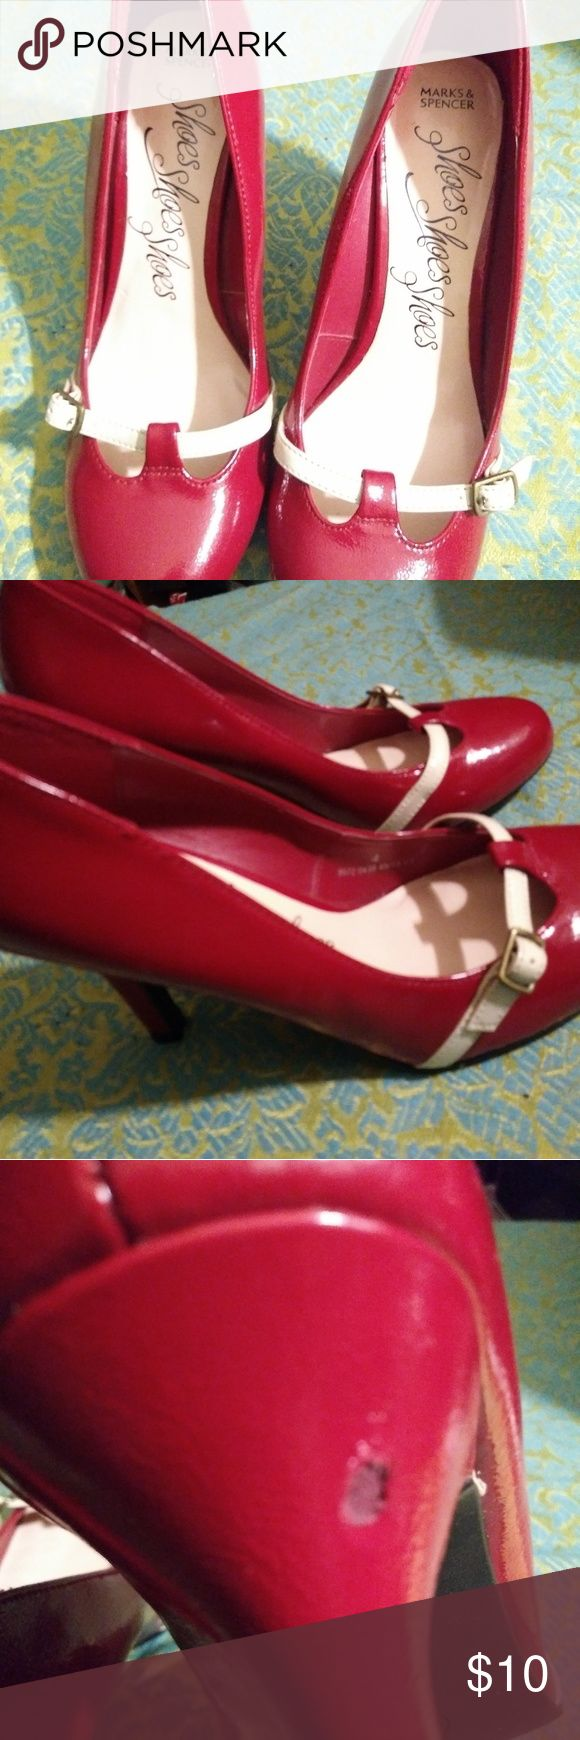 Mark and Spencer red heels with white strap Used.  Right heel has wear shown in picture. Marks & Spencer Shoes Heels